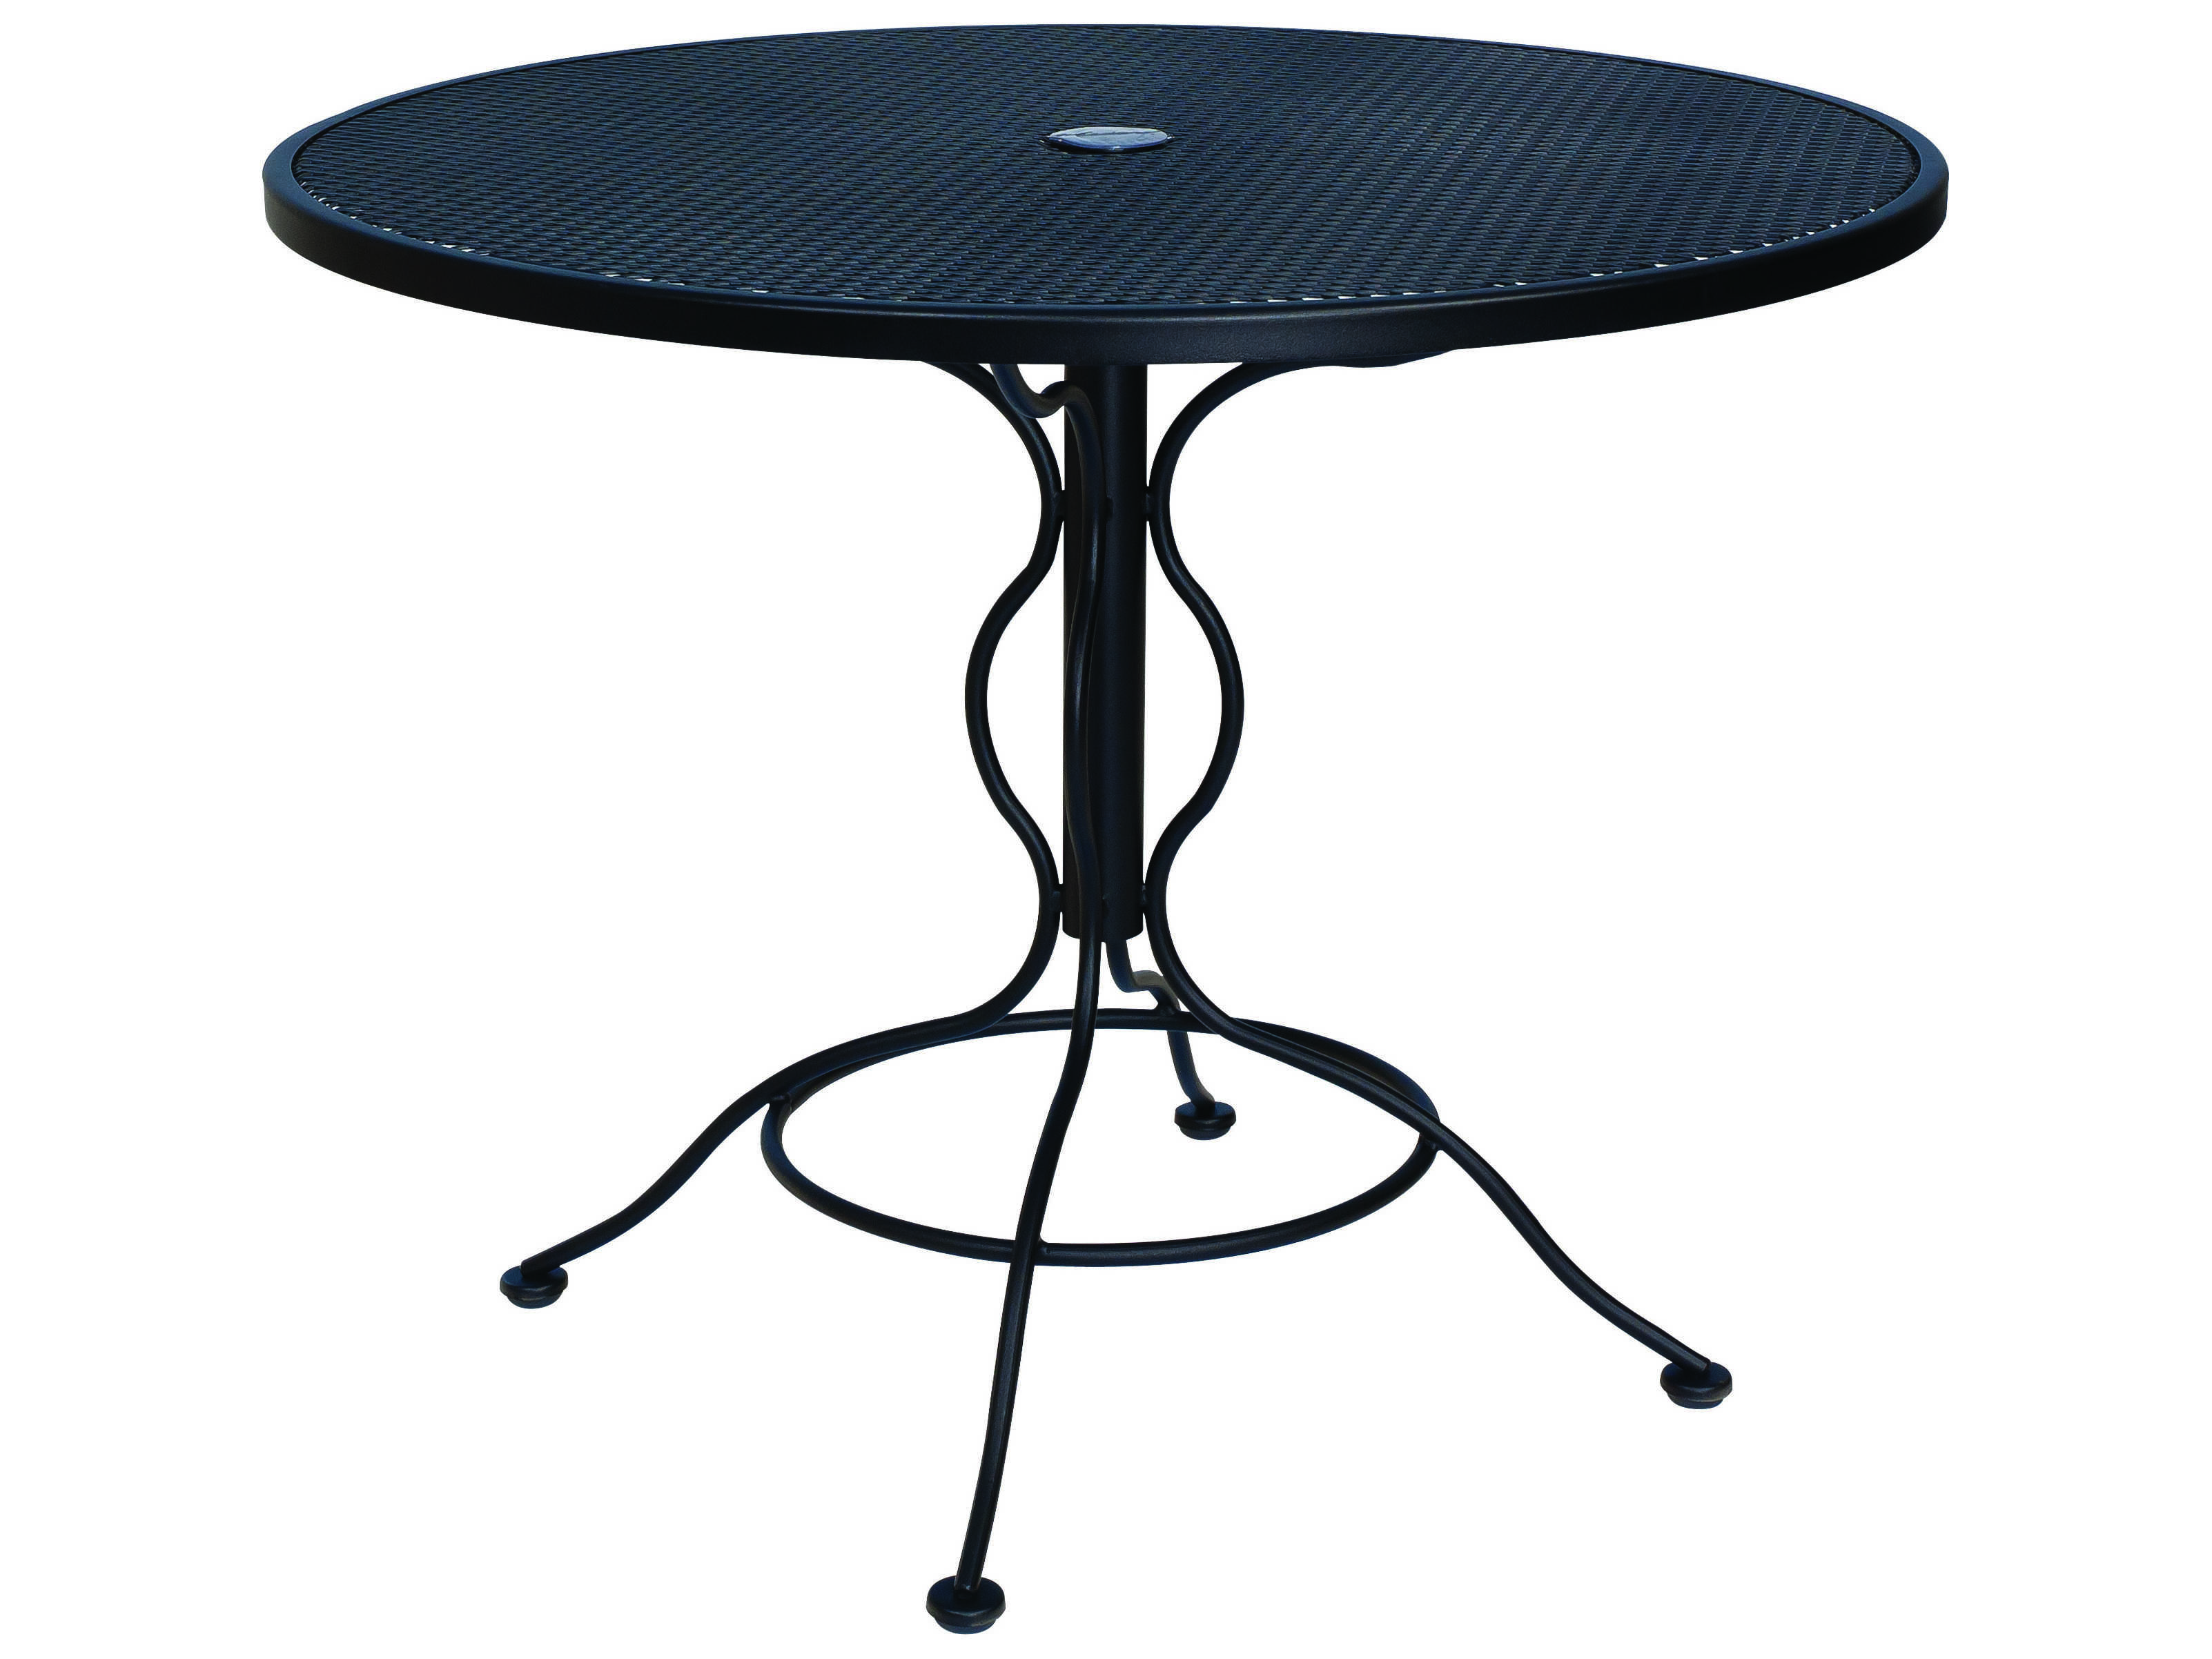 woodard mesh wrought iron 36 round bistro table with umbrella hole 190135. Black Bedroom Furniture Sets. Home Design Ideas